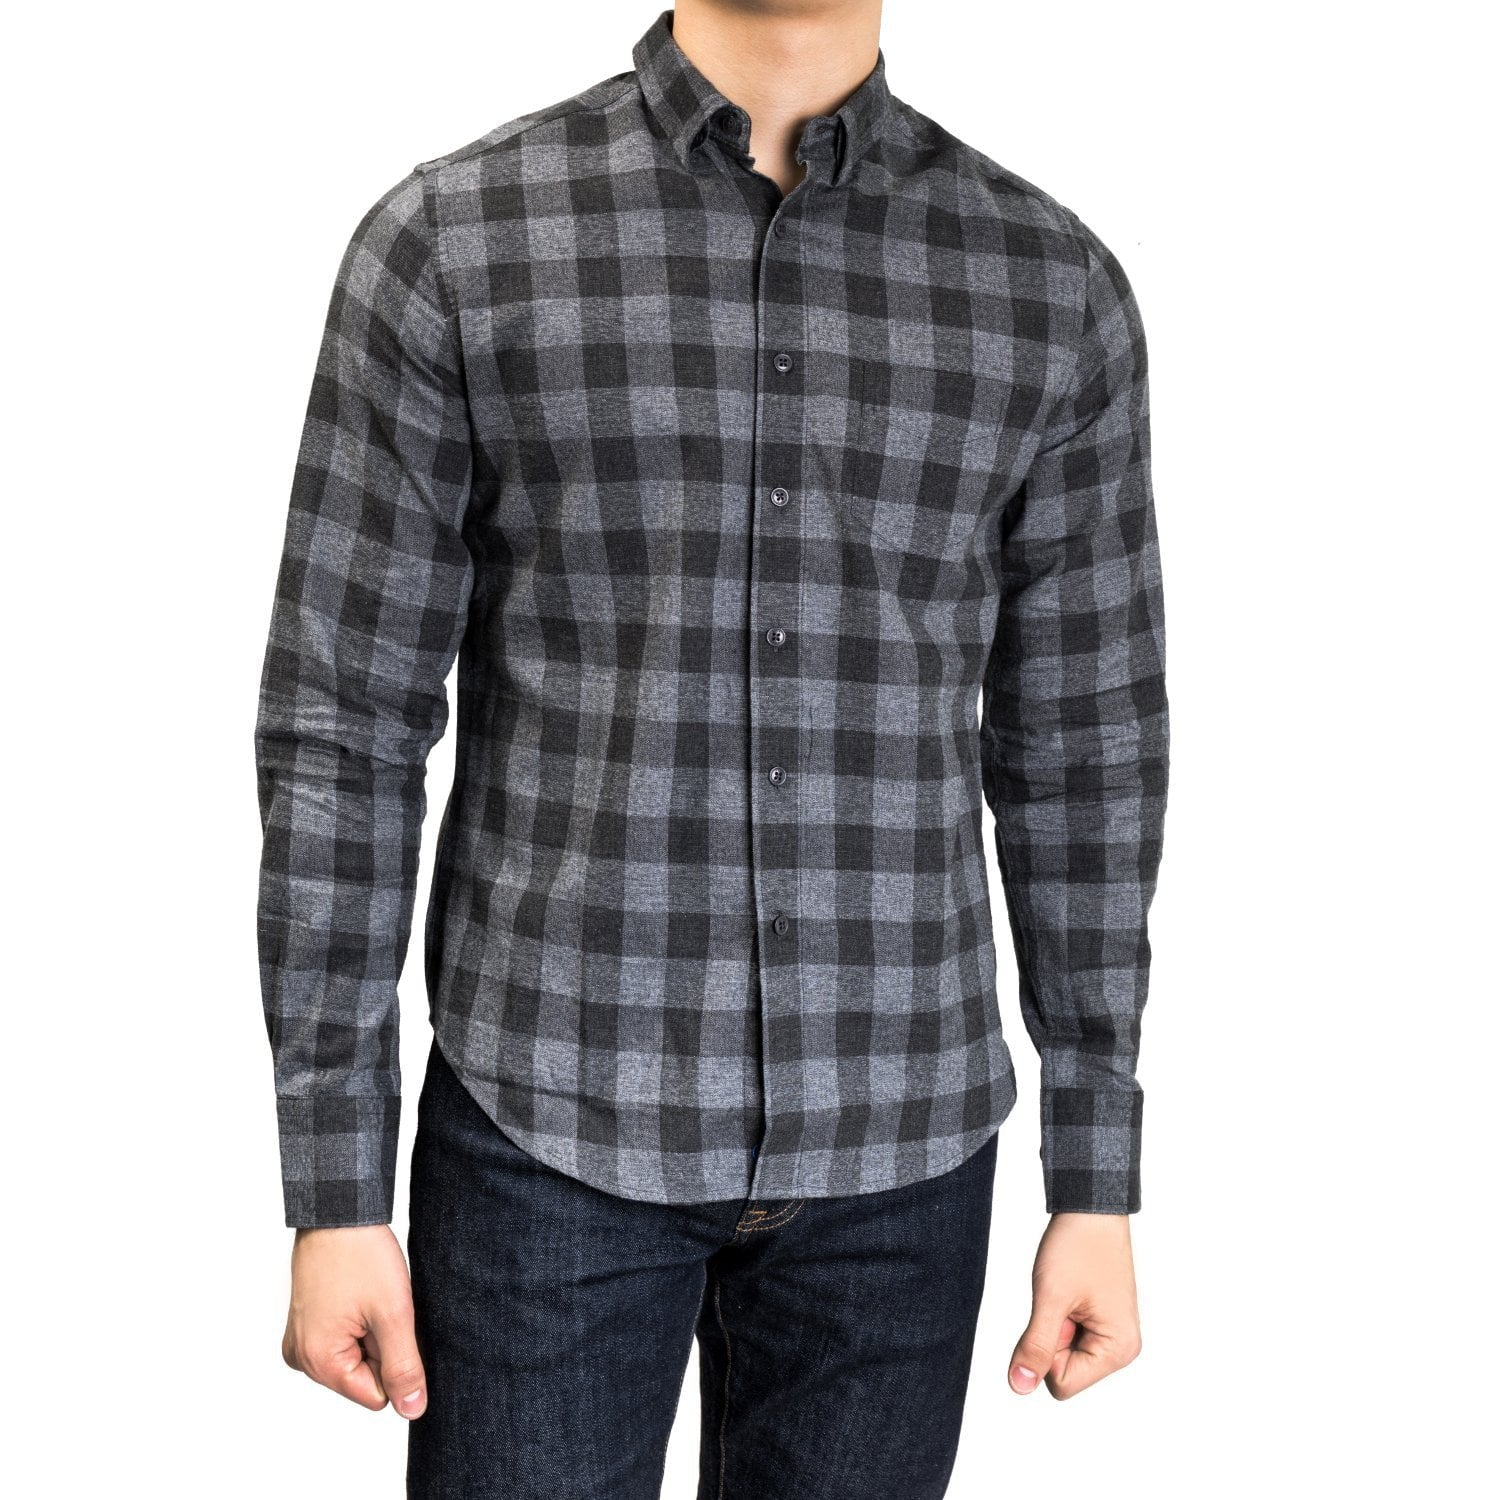 untuck(able) Charcoal Gingham